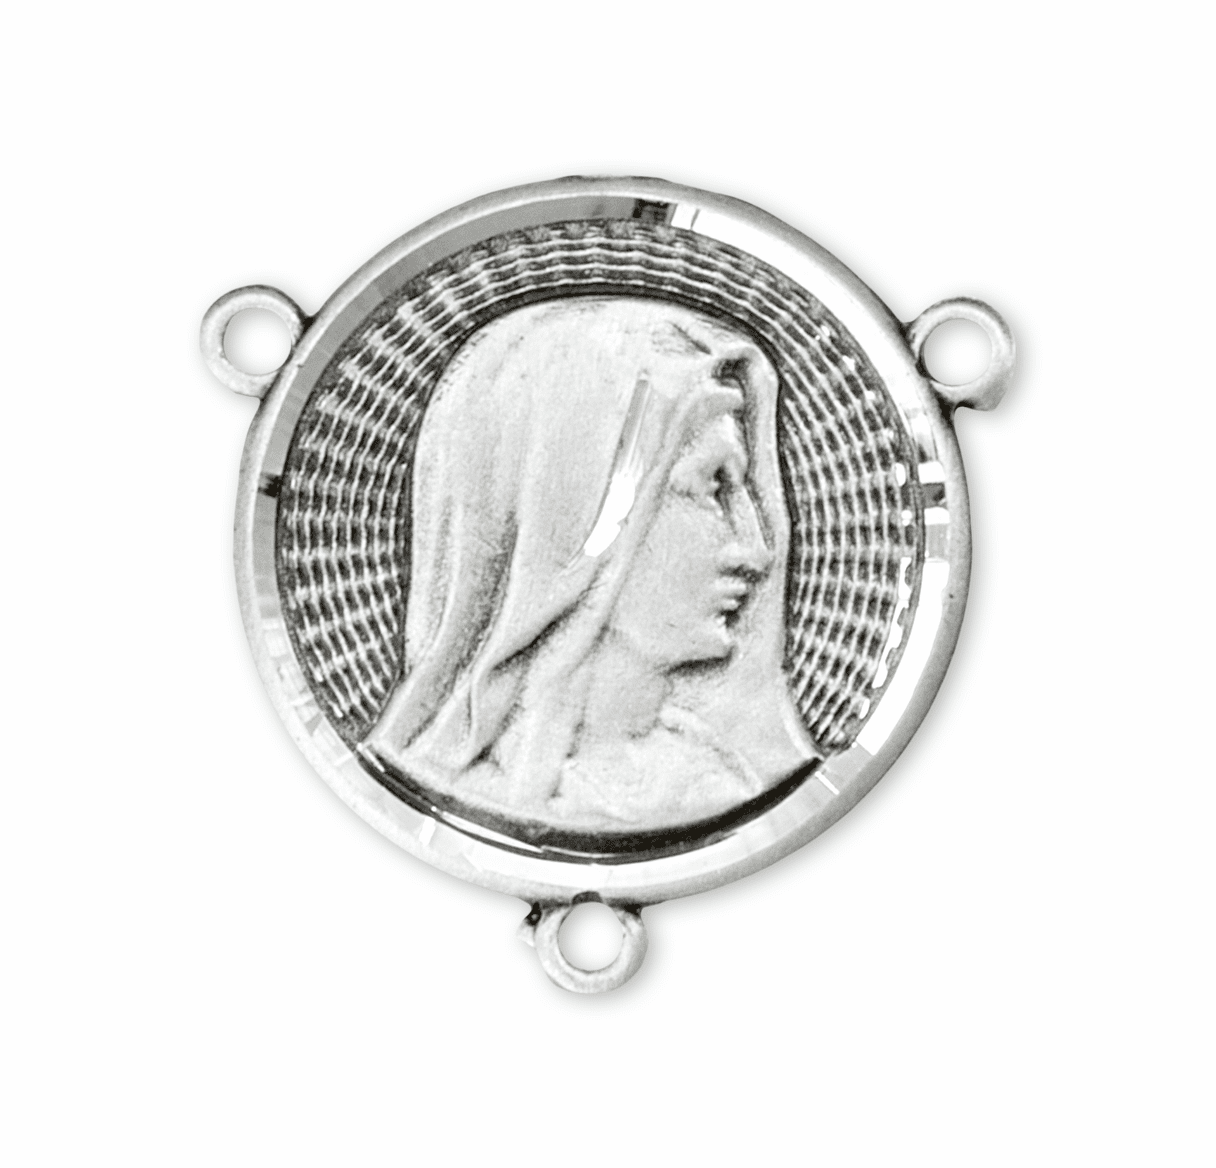 HMH Religious Round Our Lady of Sorrows Sterling Silver Rosary Center